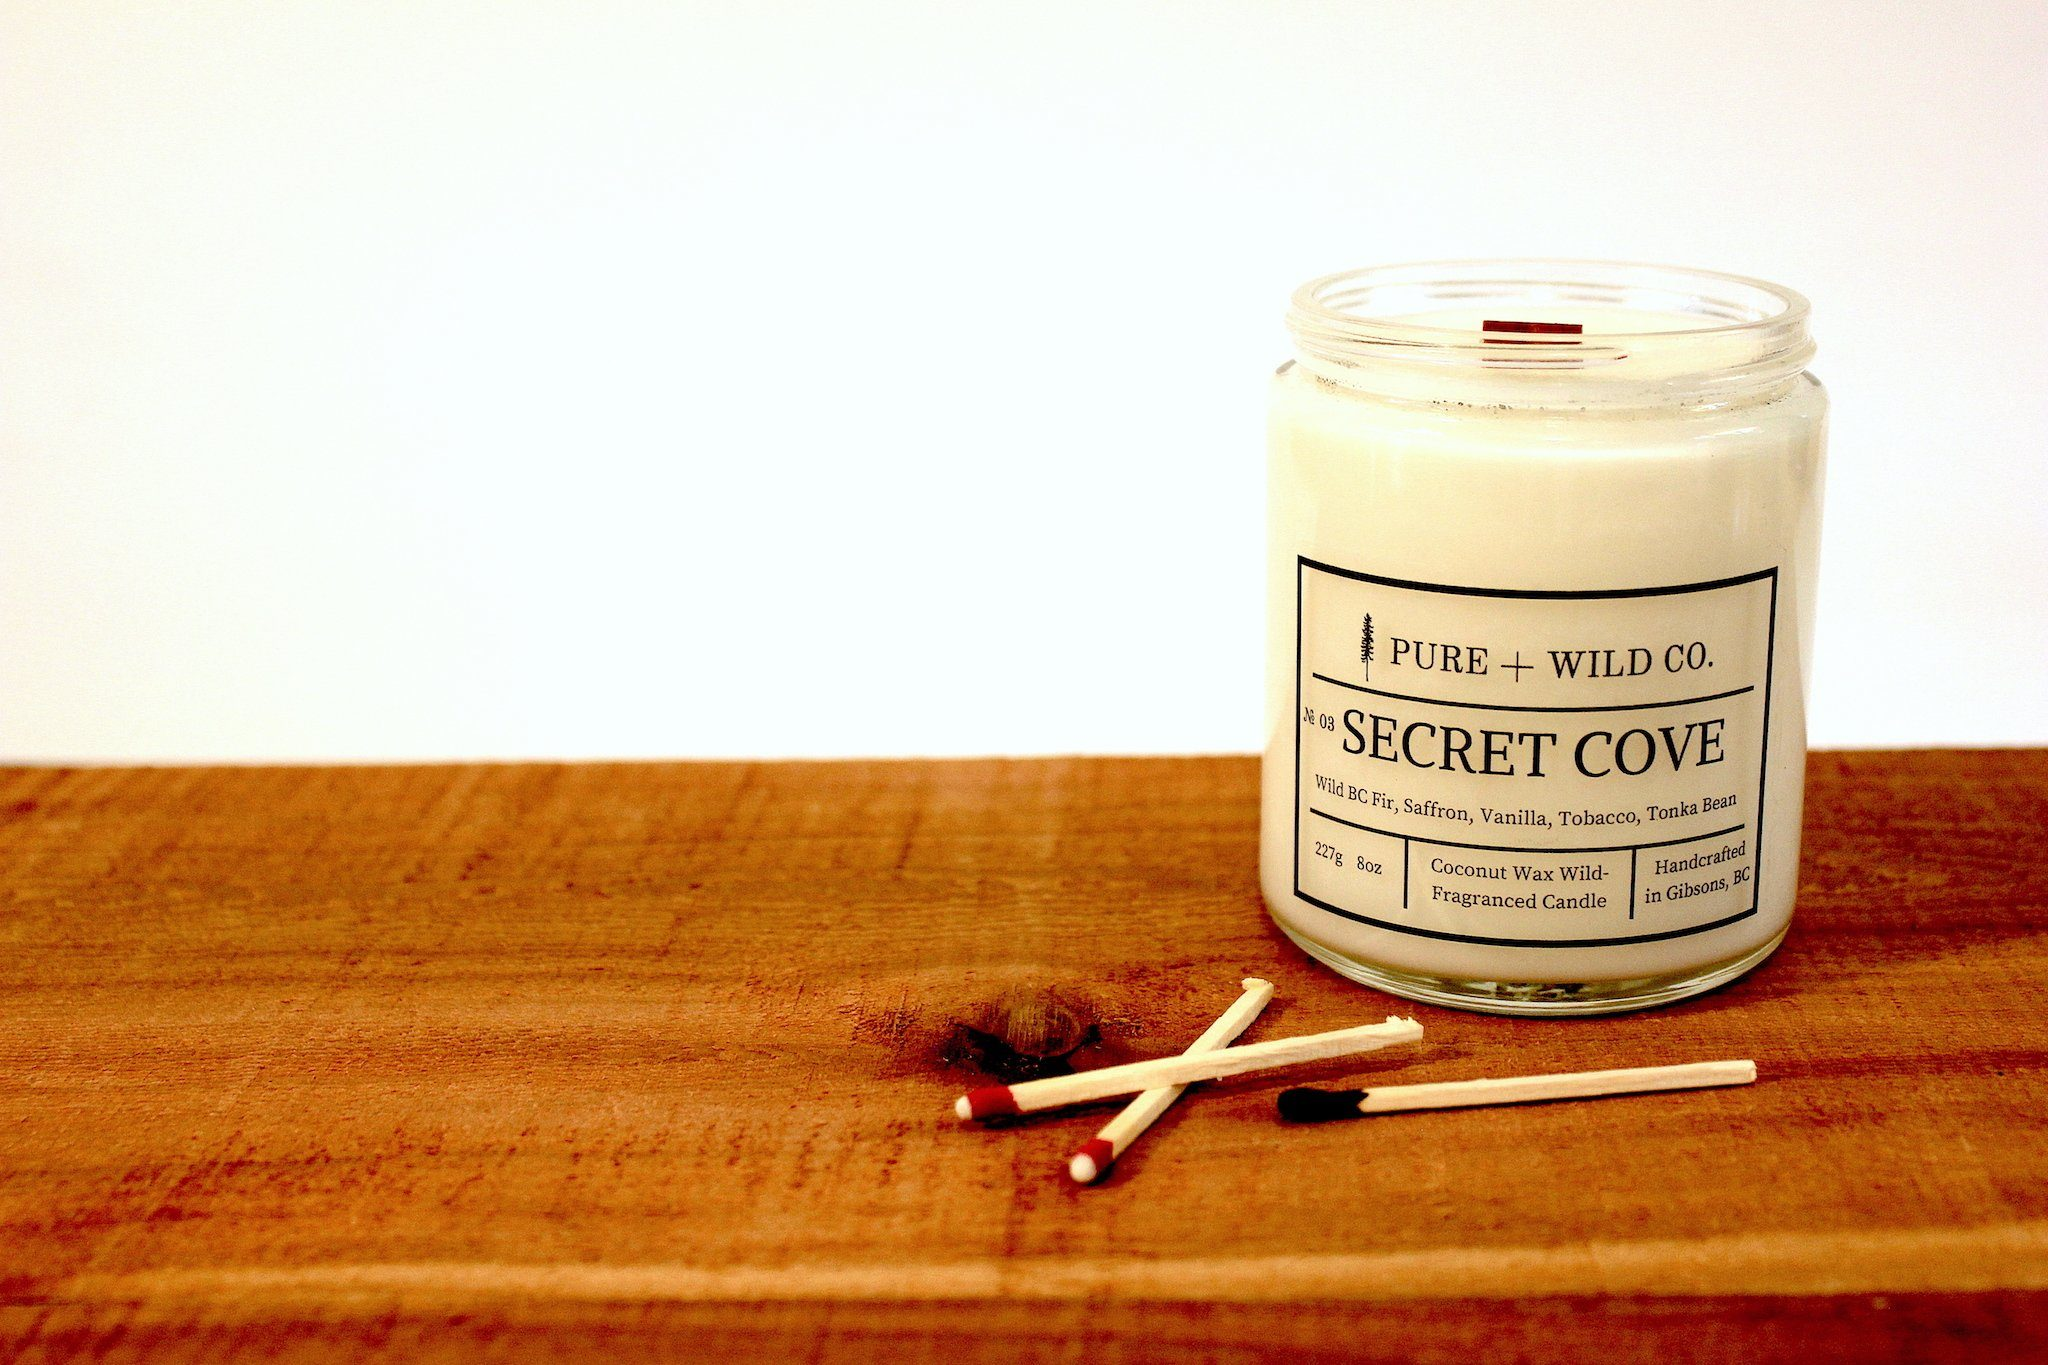 № 03 SECRET COVE - Fir, Saffron, Vanilla, Tobacco, Tonka Bean PURE + WILD CO. Wood Wick